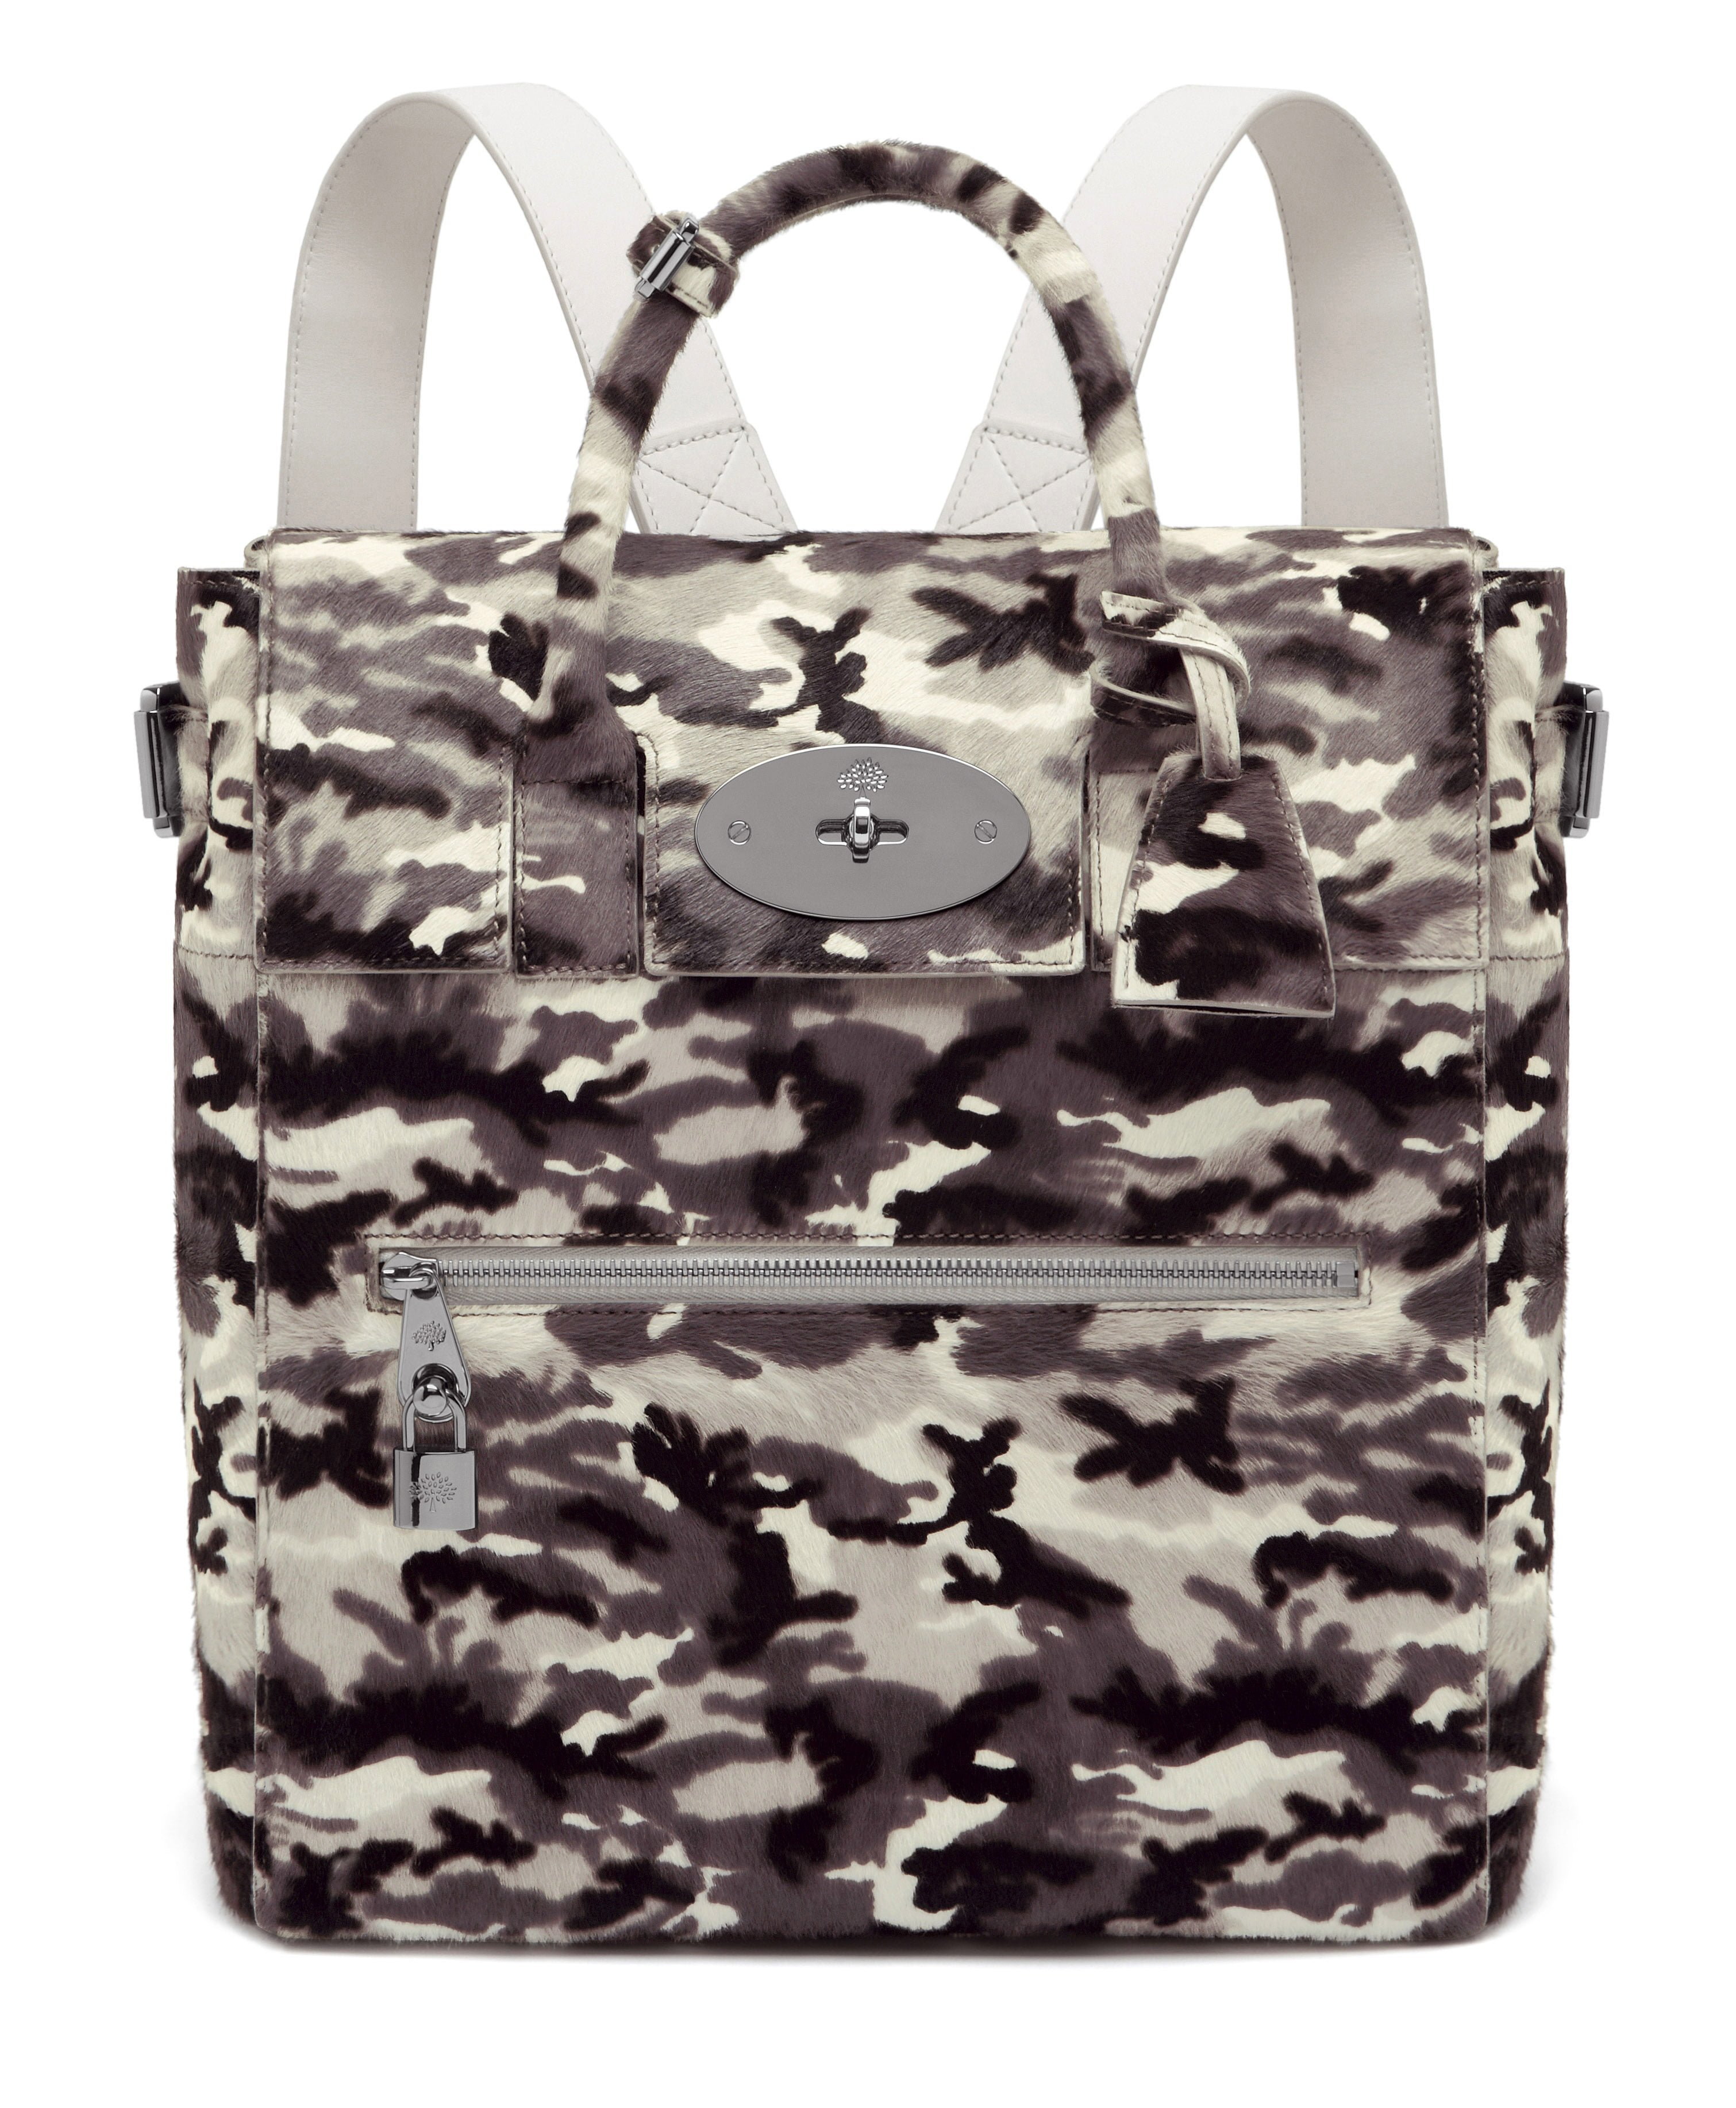 Large Cara Delevingne Bag in Black-White Camo Haircalf